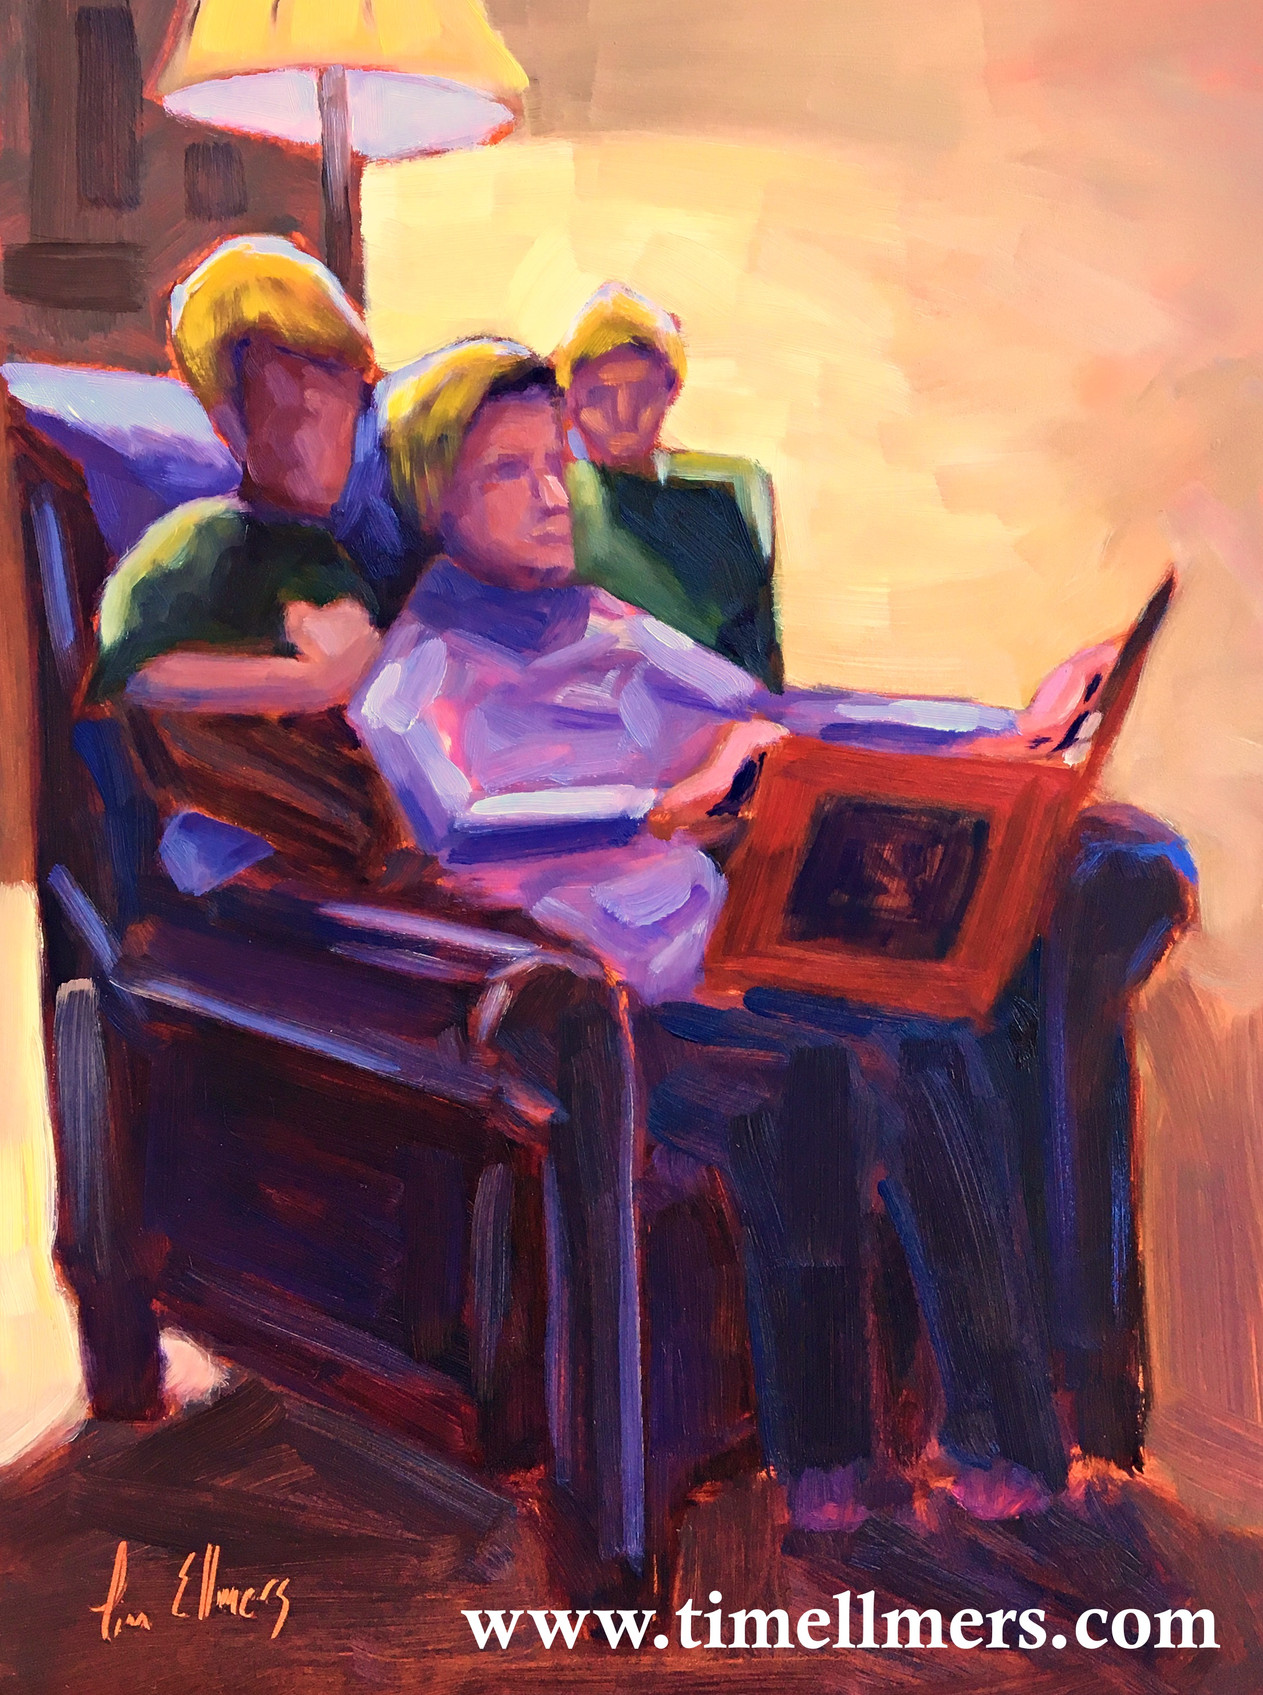 Gammy Reads a Christmas Story; 9 x 12 in., Oil on Panel